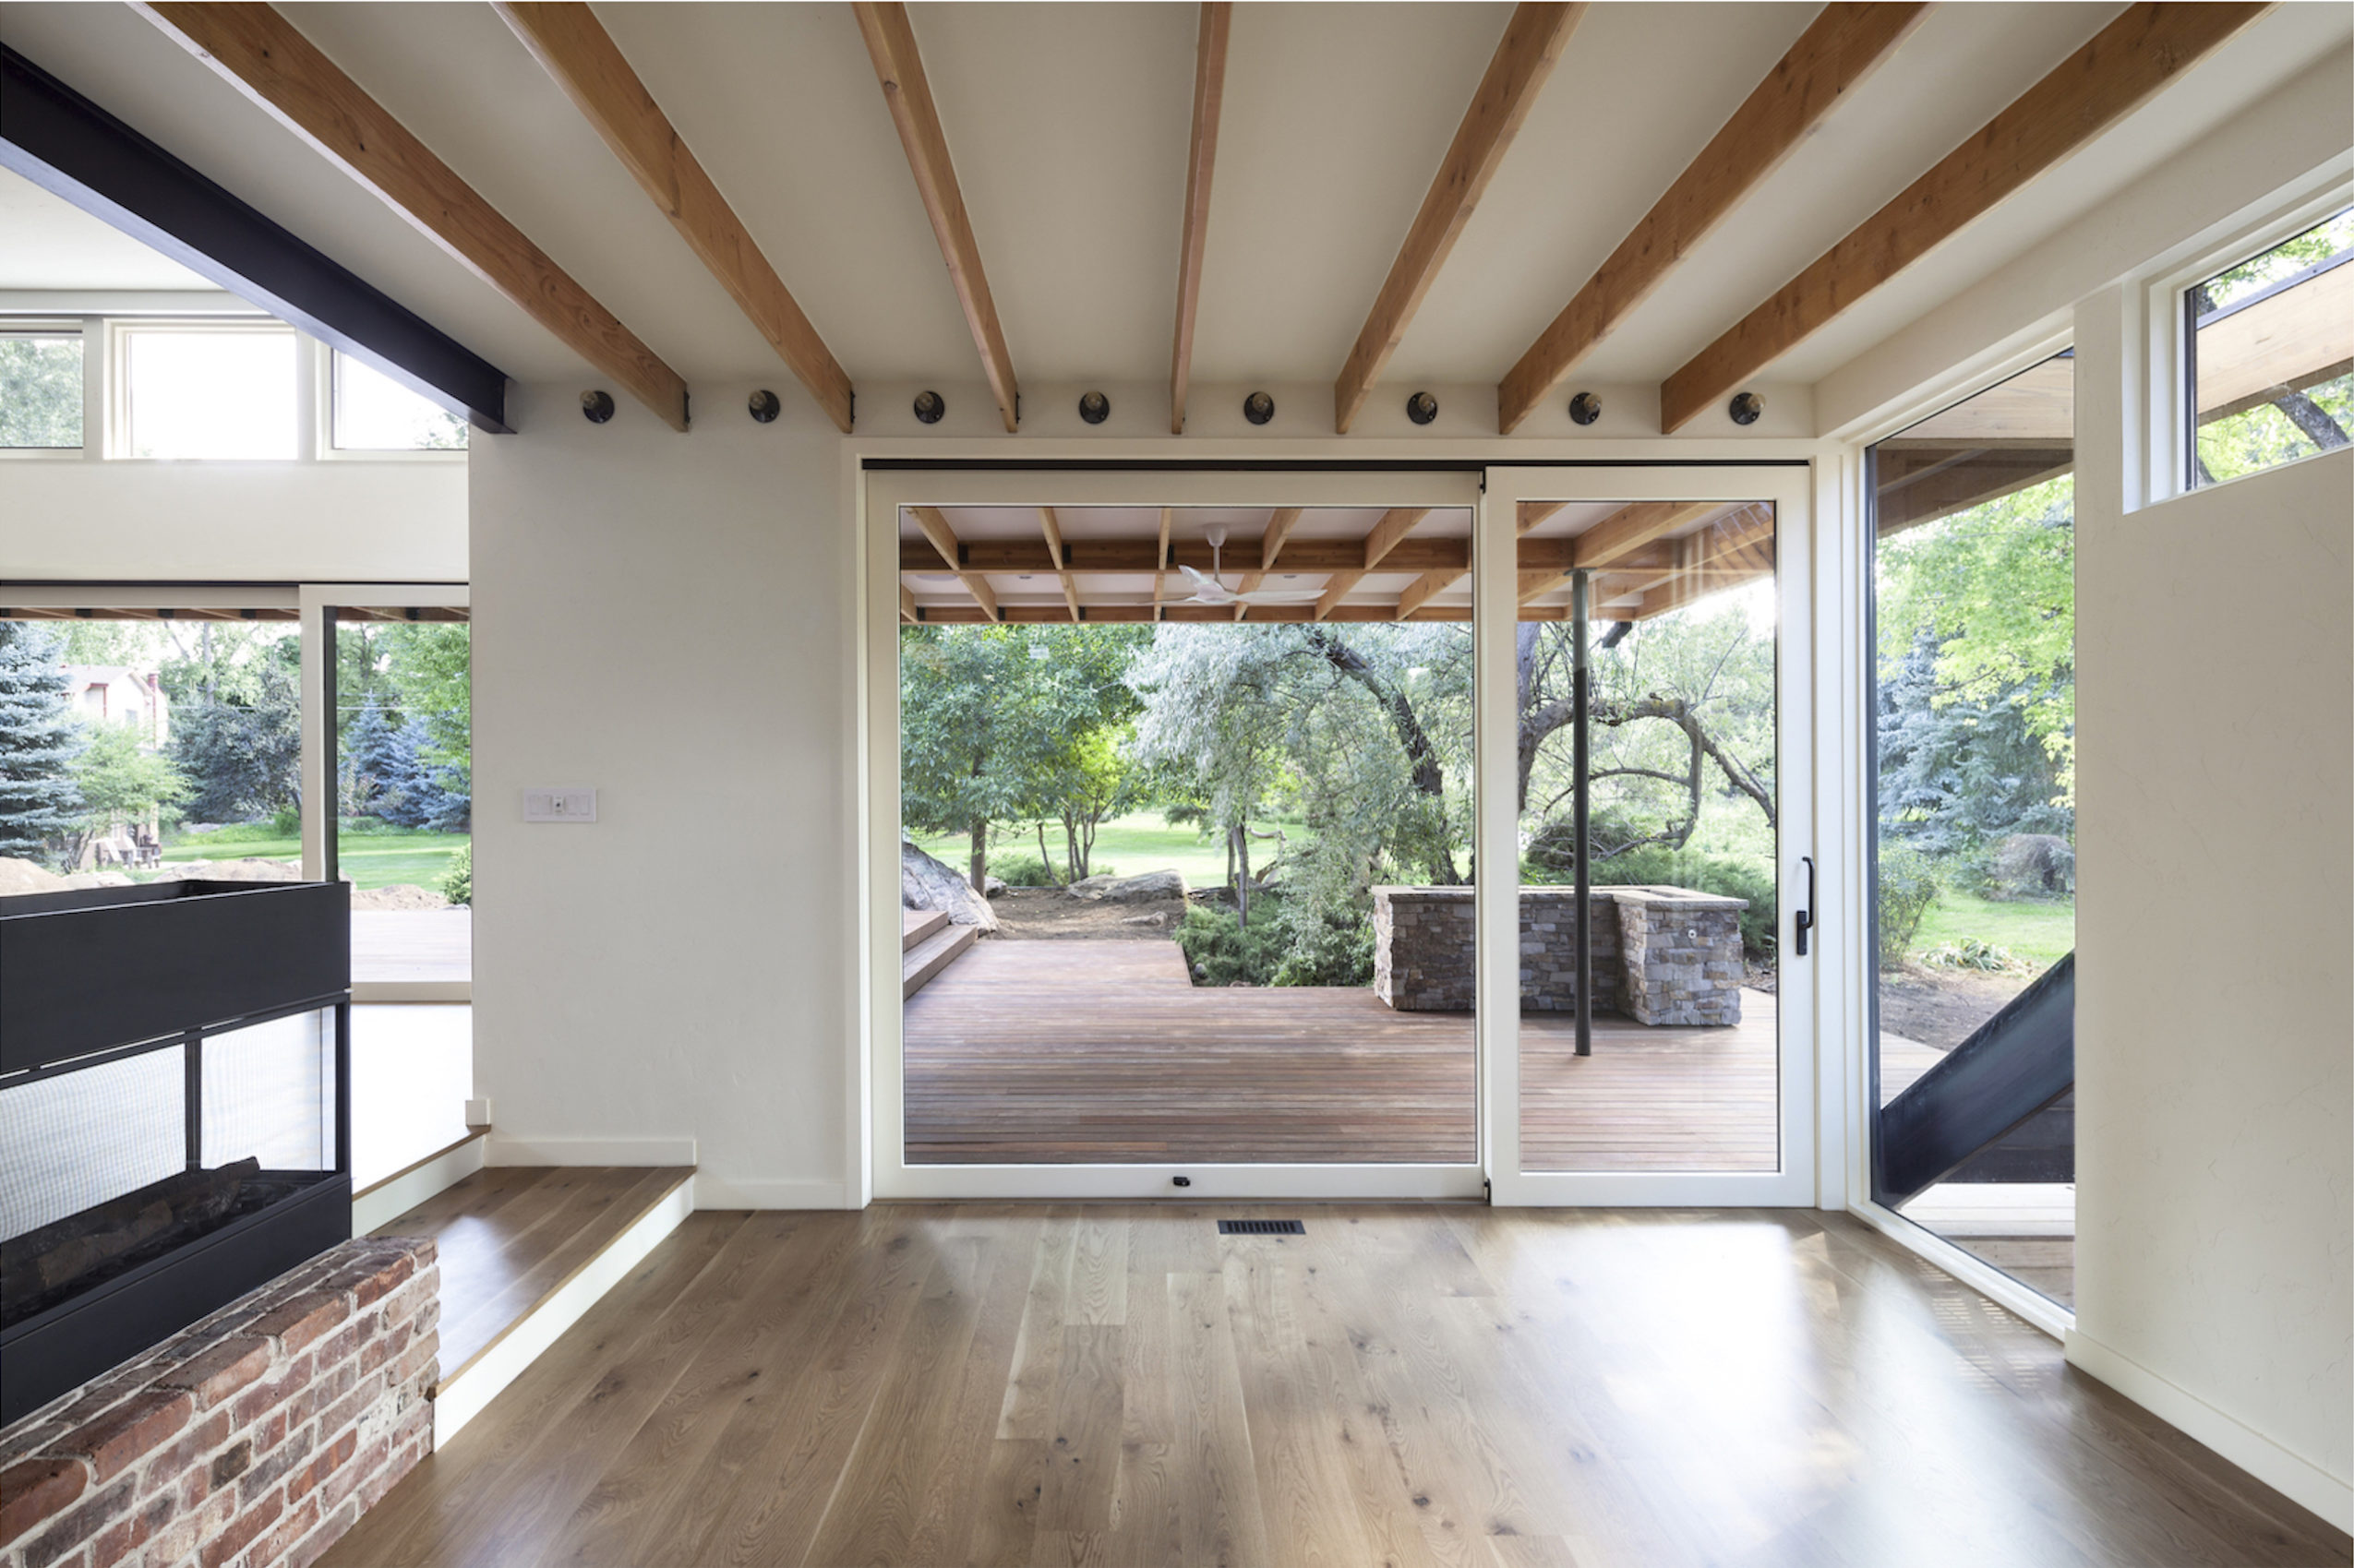 Interior of Inside-Out House by Renée del Gaudio Architecture